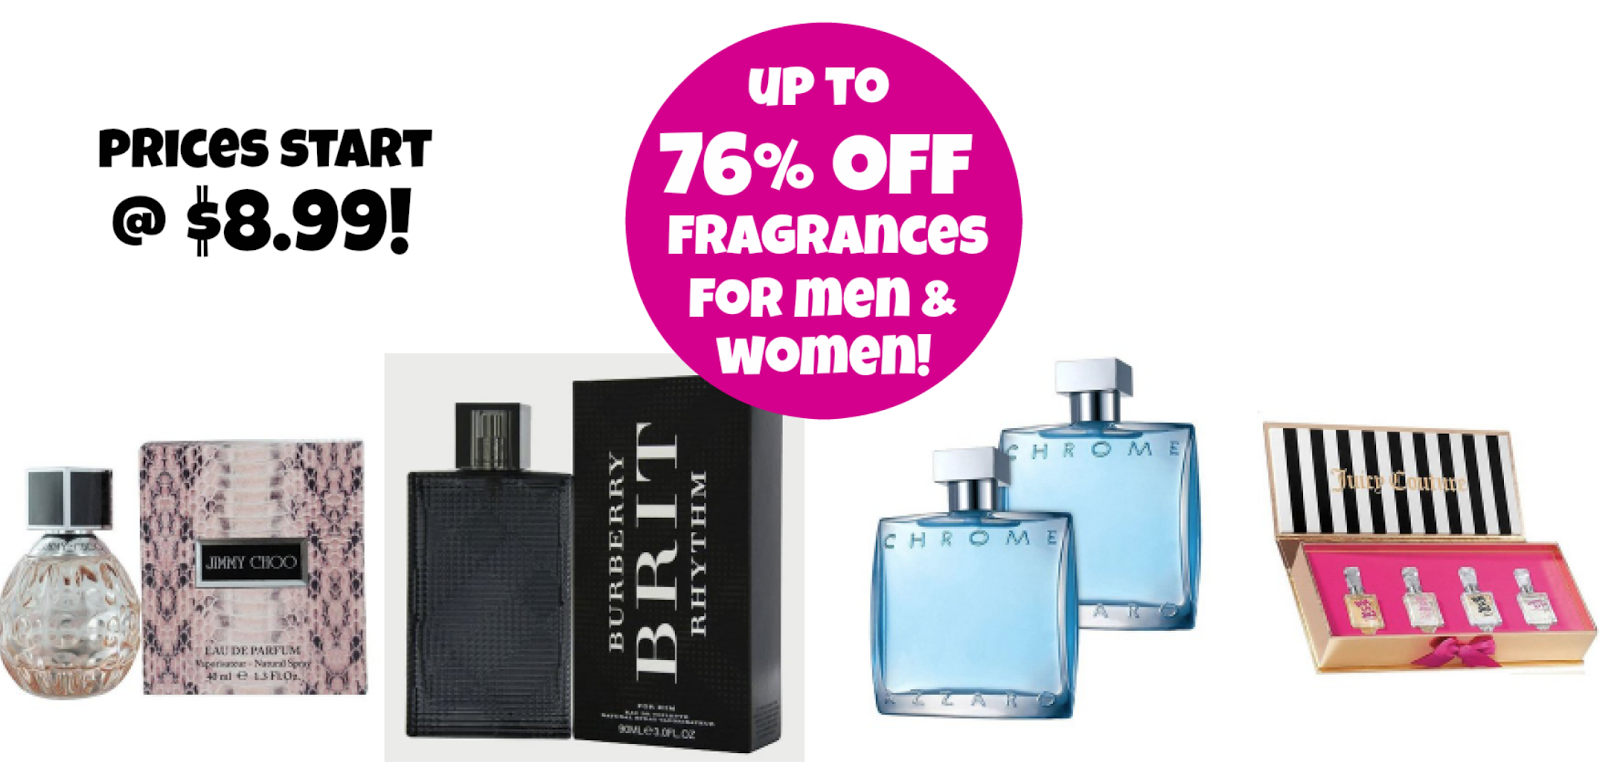 http://www.thebinderladies.com/2015/01/tanga-up-to-76-off-popular-fragrances.html